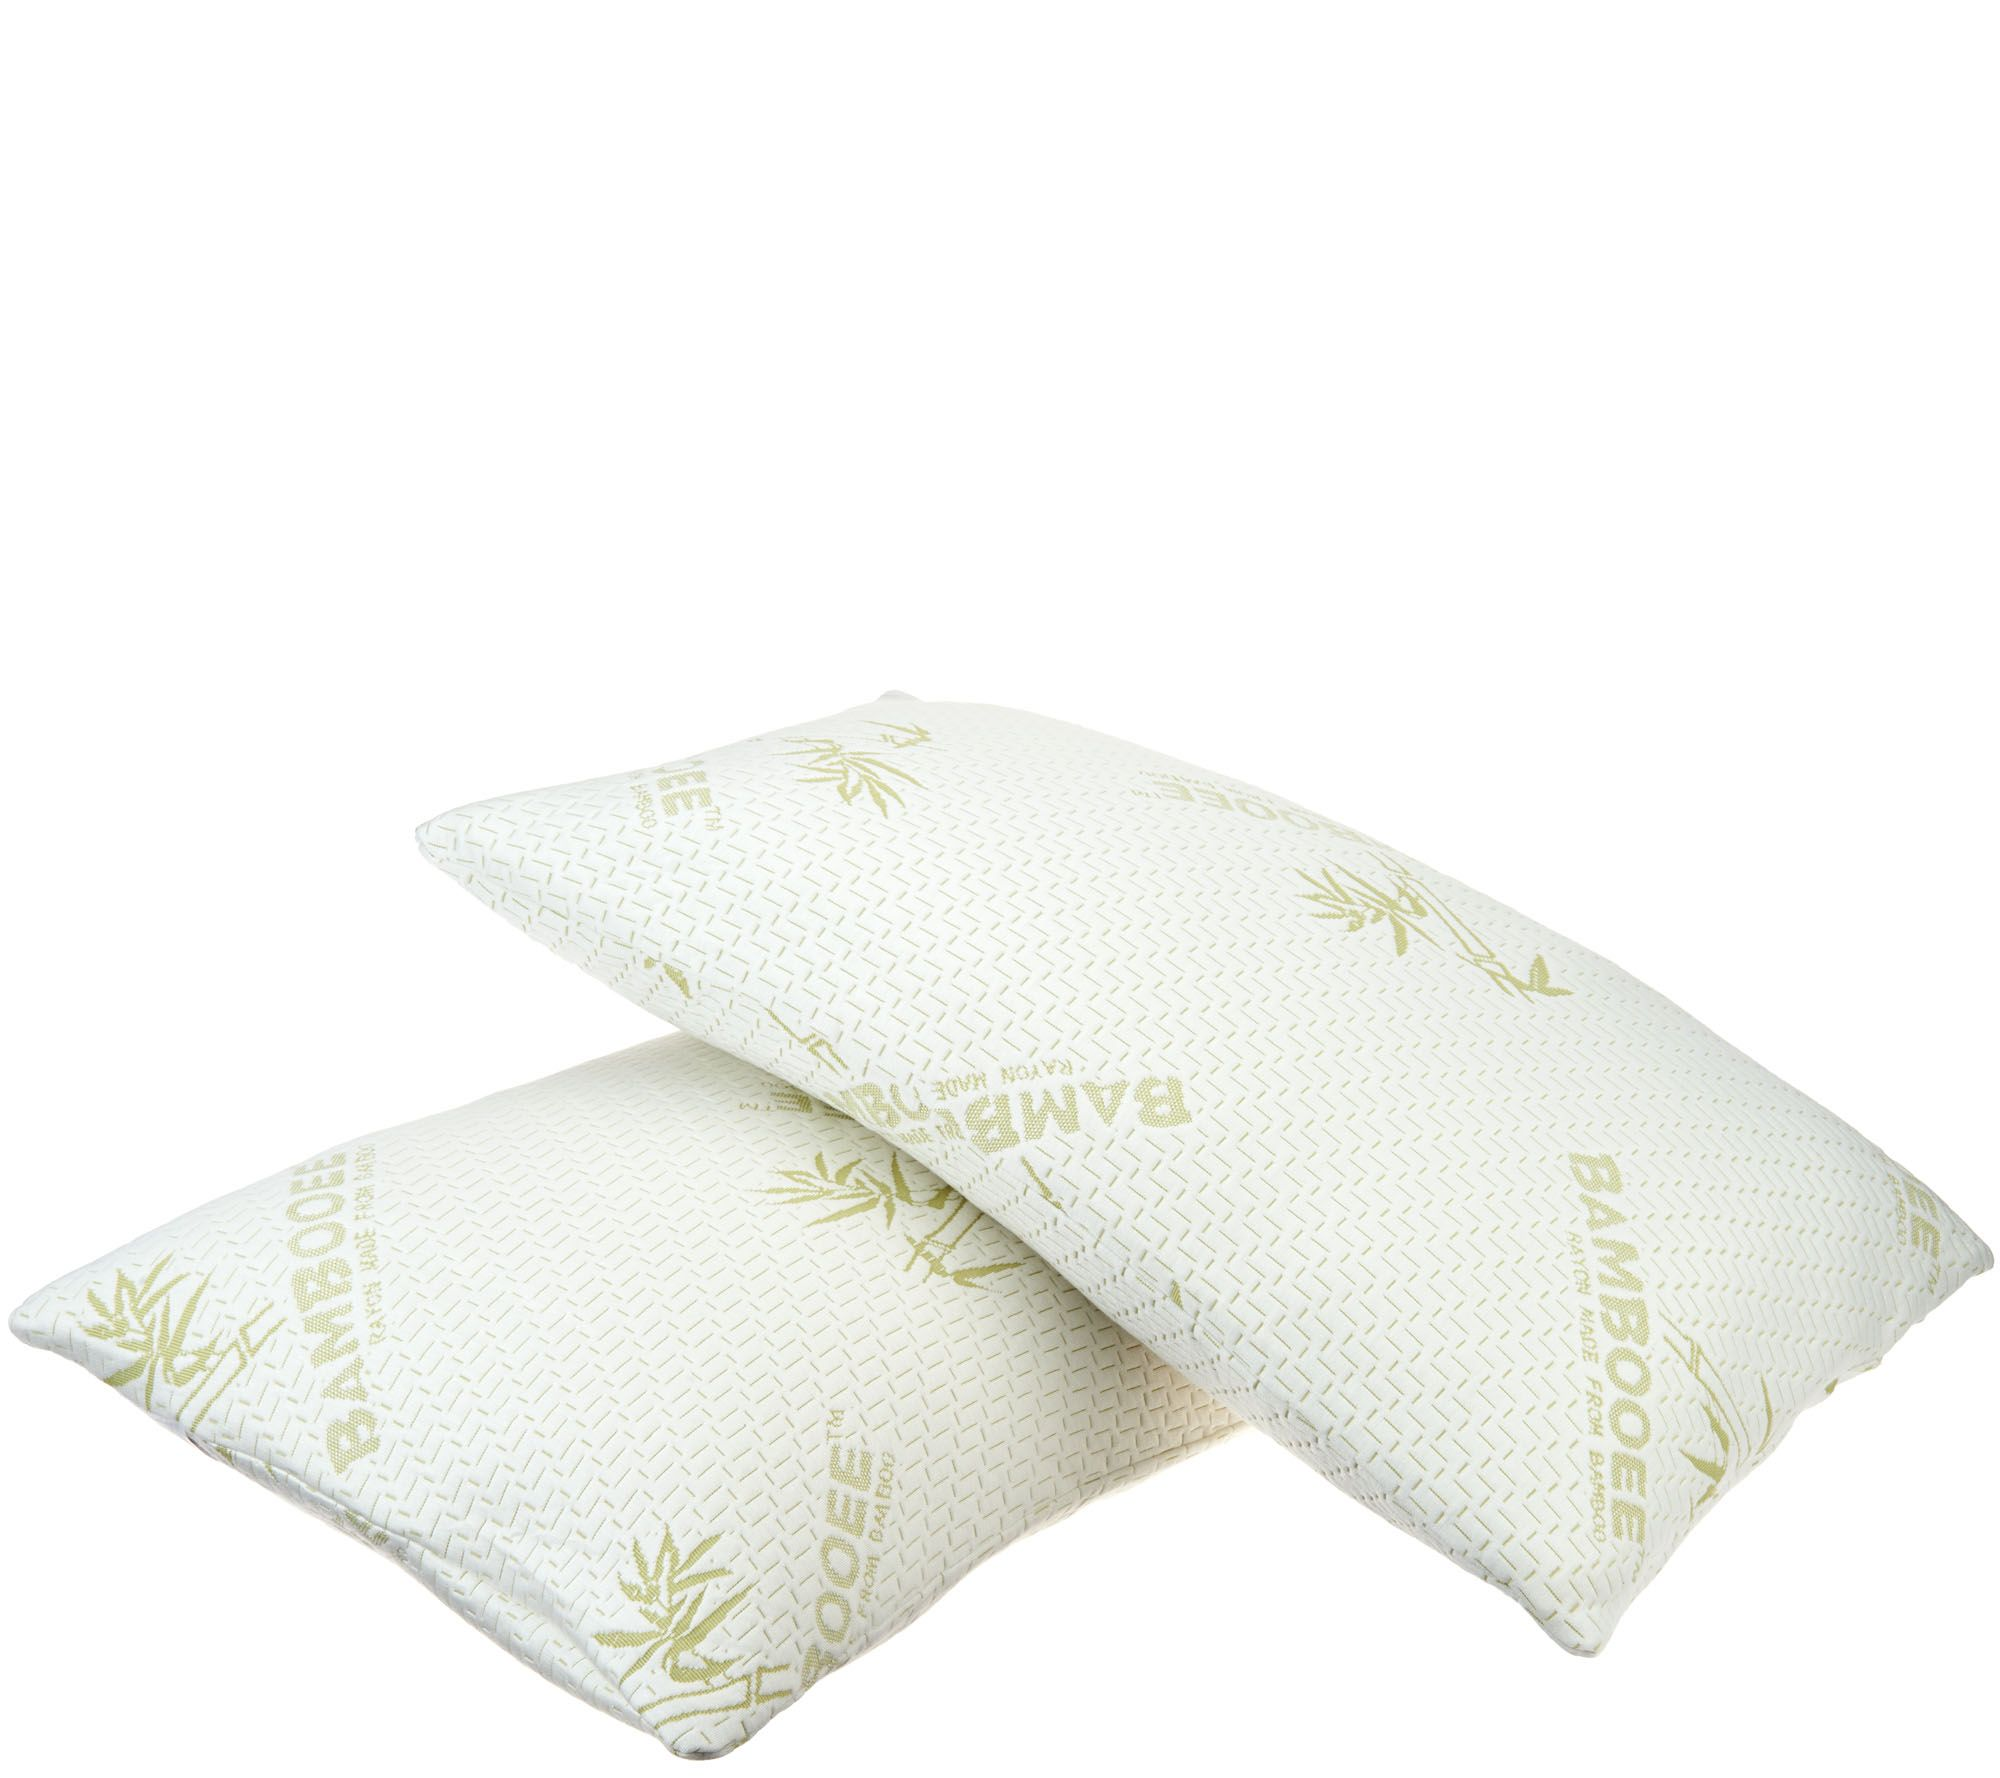 pillow pillows bamboo images comforter review king gallery comfort hotel